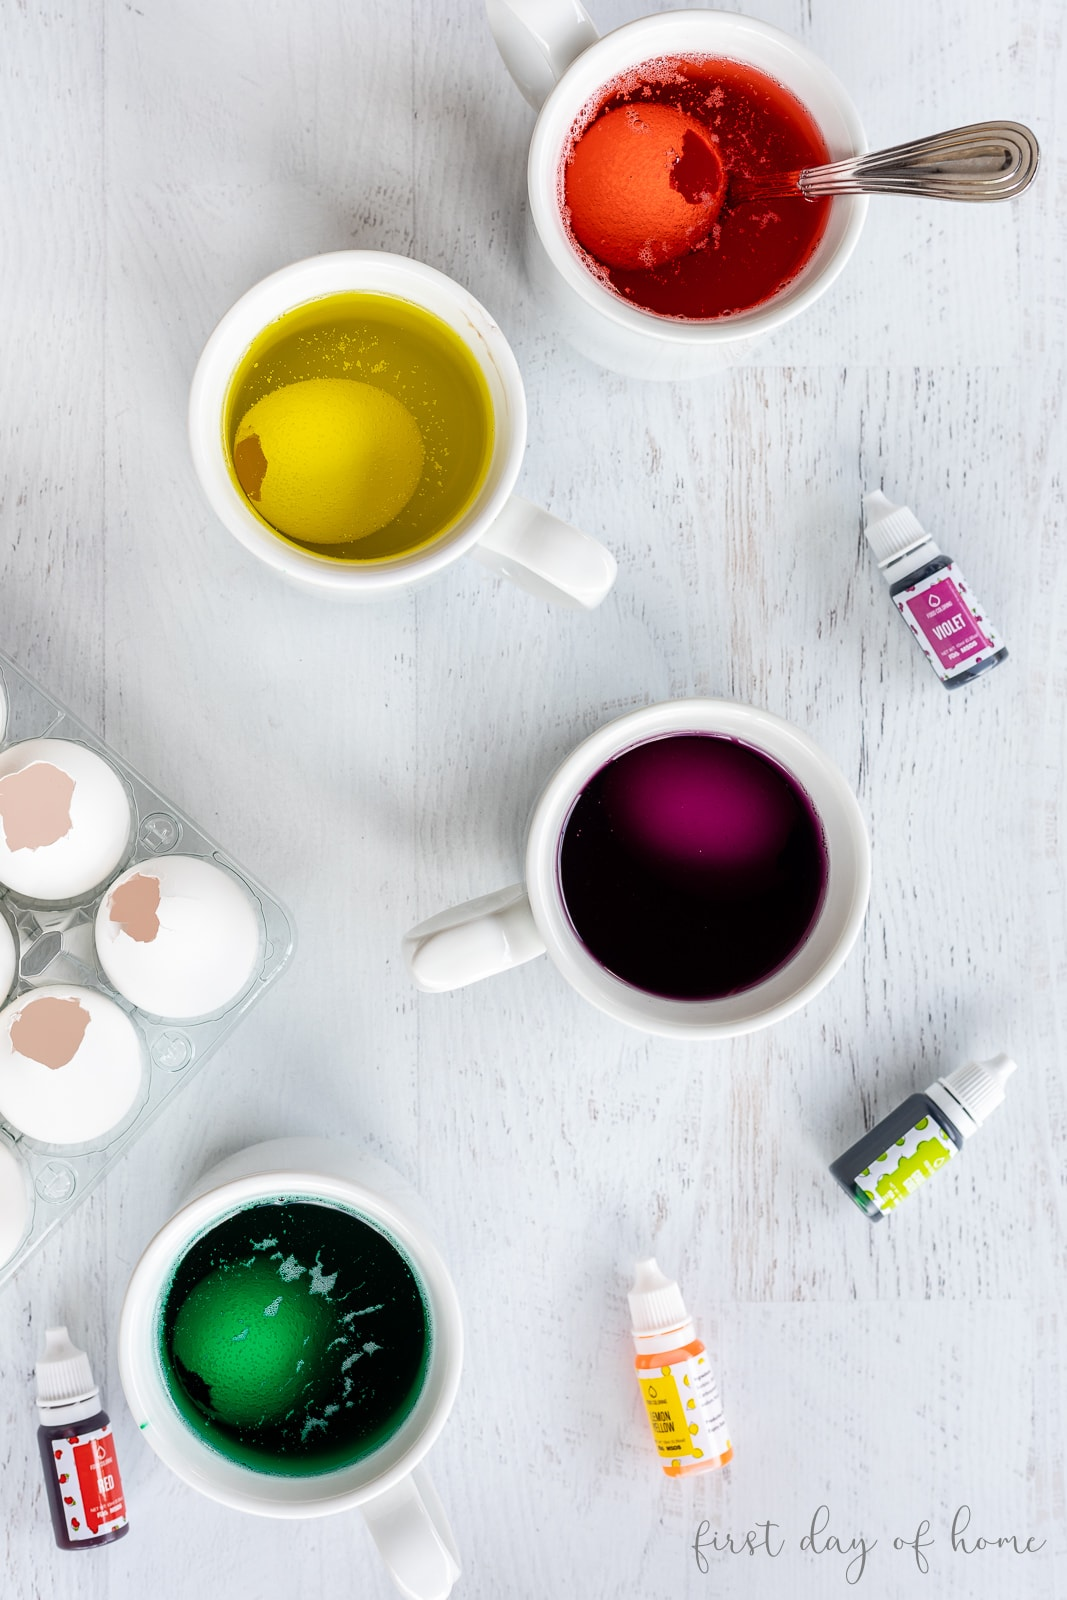 Dyeing eggs in mugs with food coloring mixture with food coloring bottles nearby